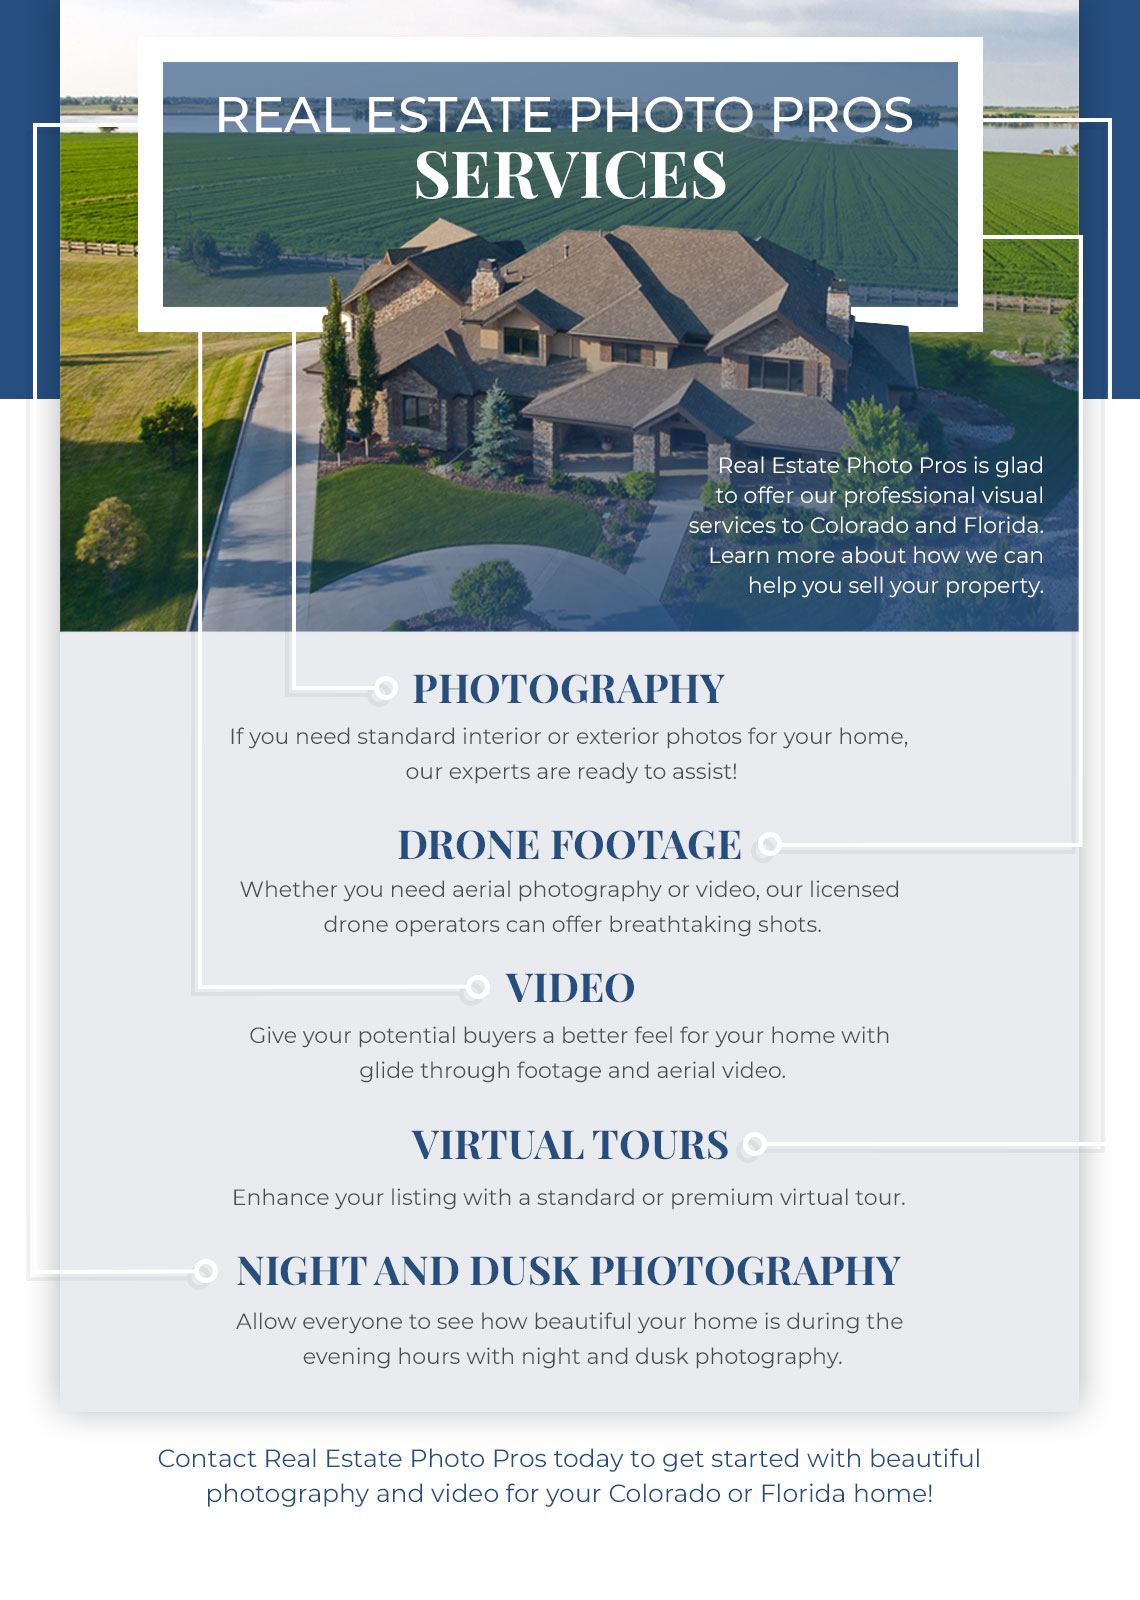 real estate photo pros services